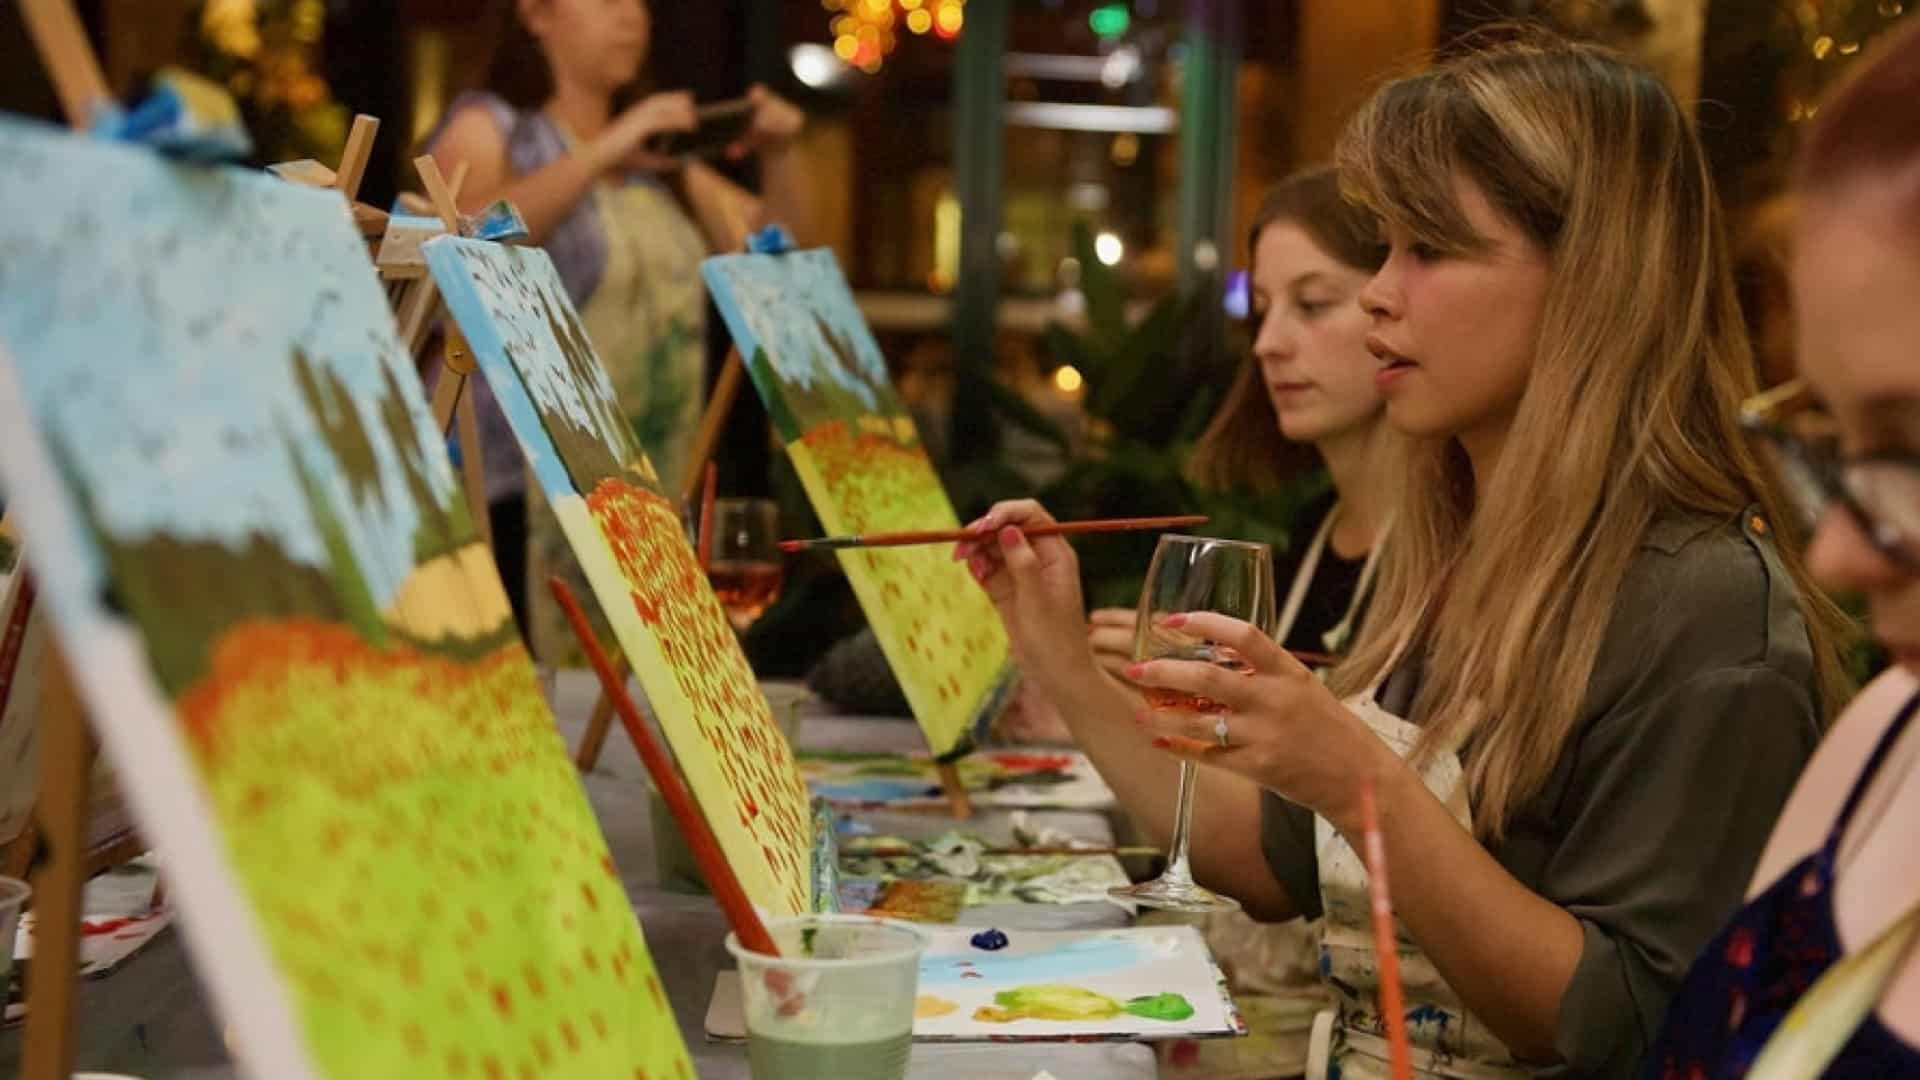 Paint and Sip classes